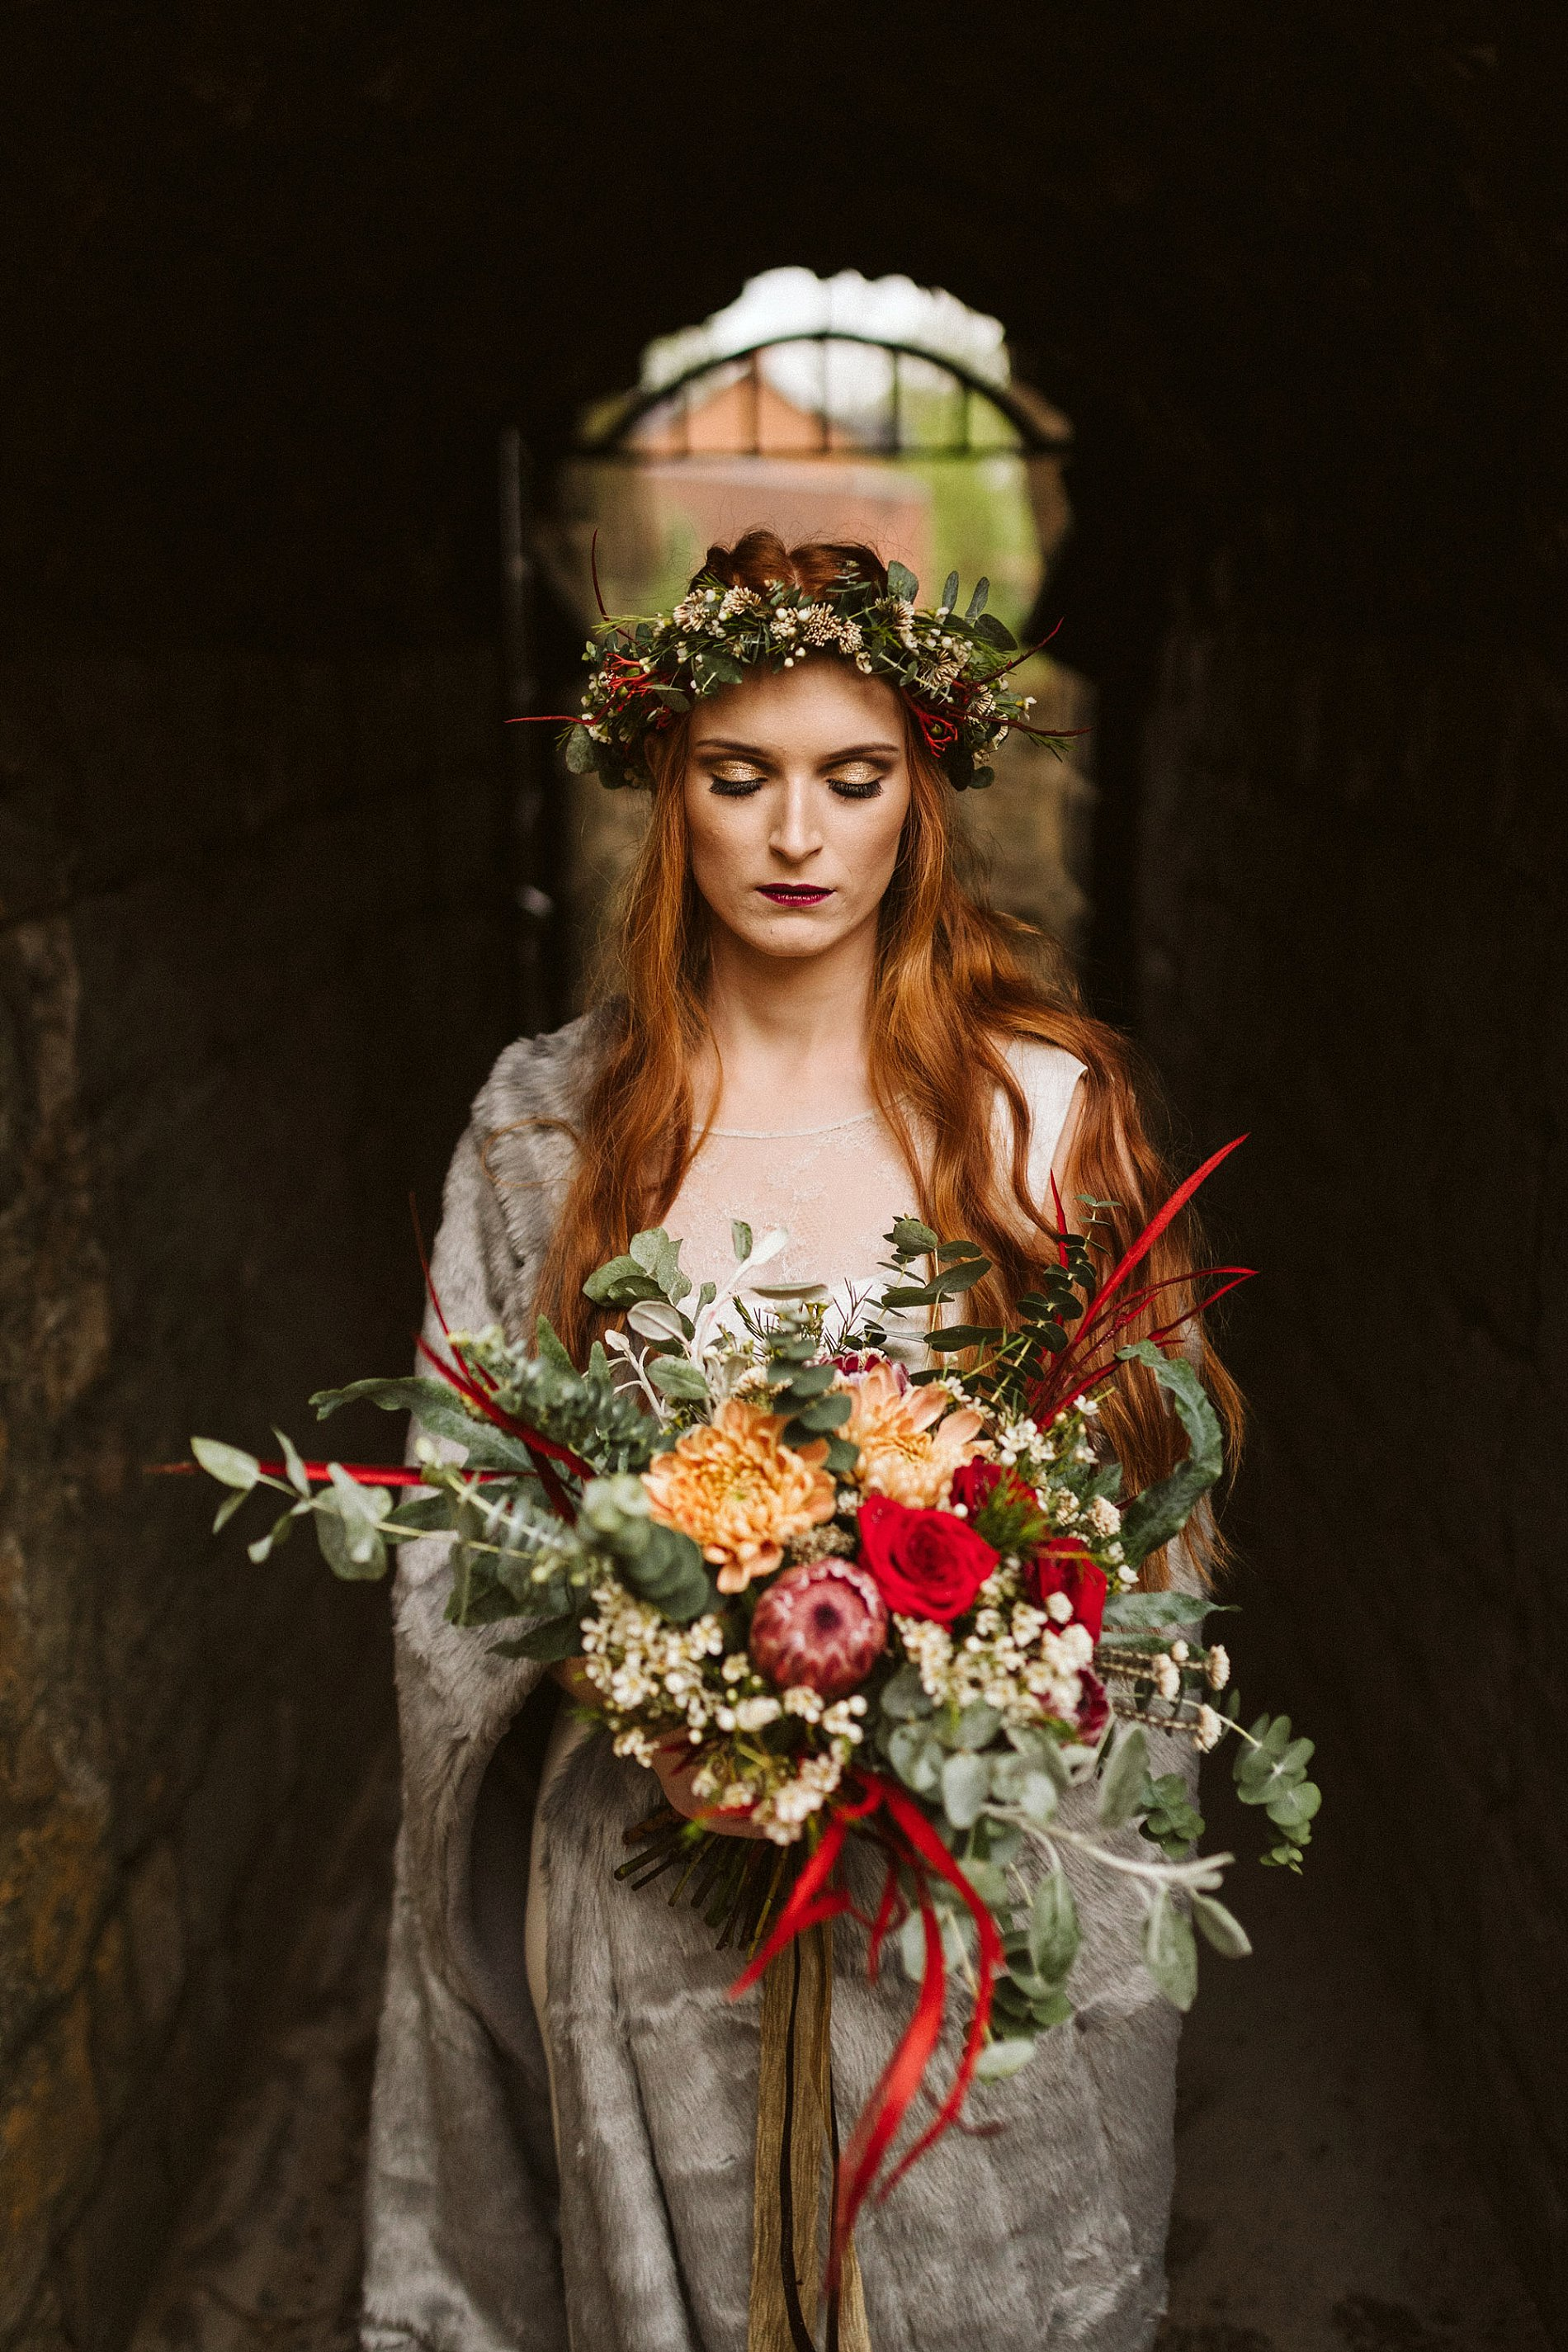 Game of Thrones Creative Bridal Shoot (c) Freya Raby (25)